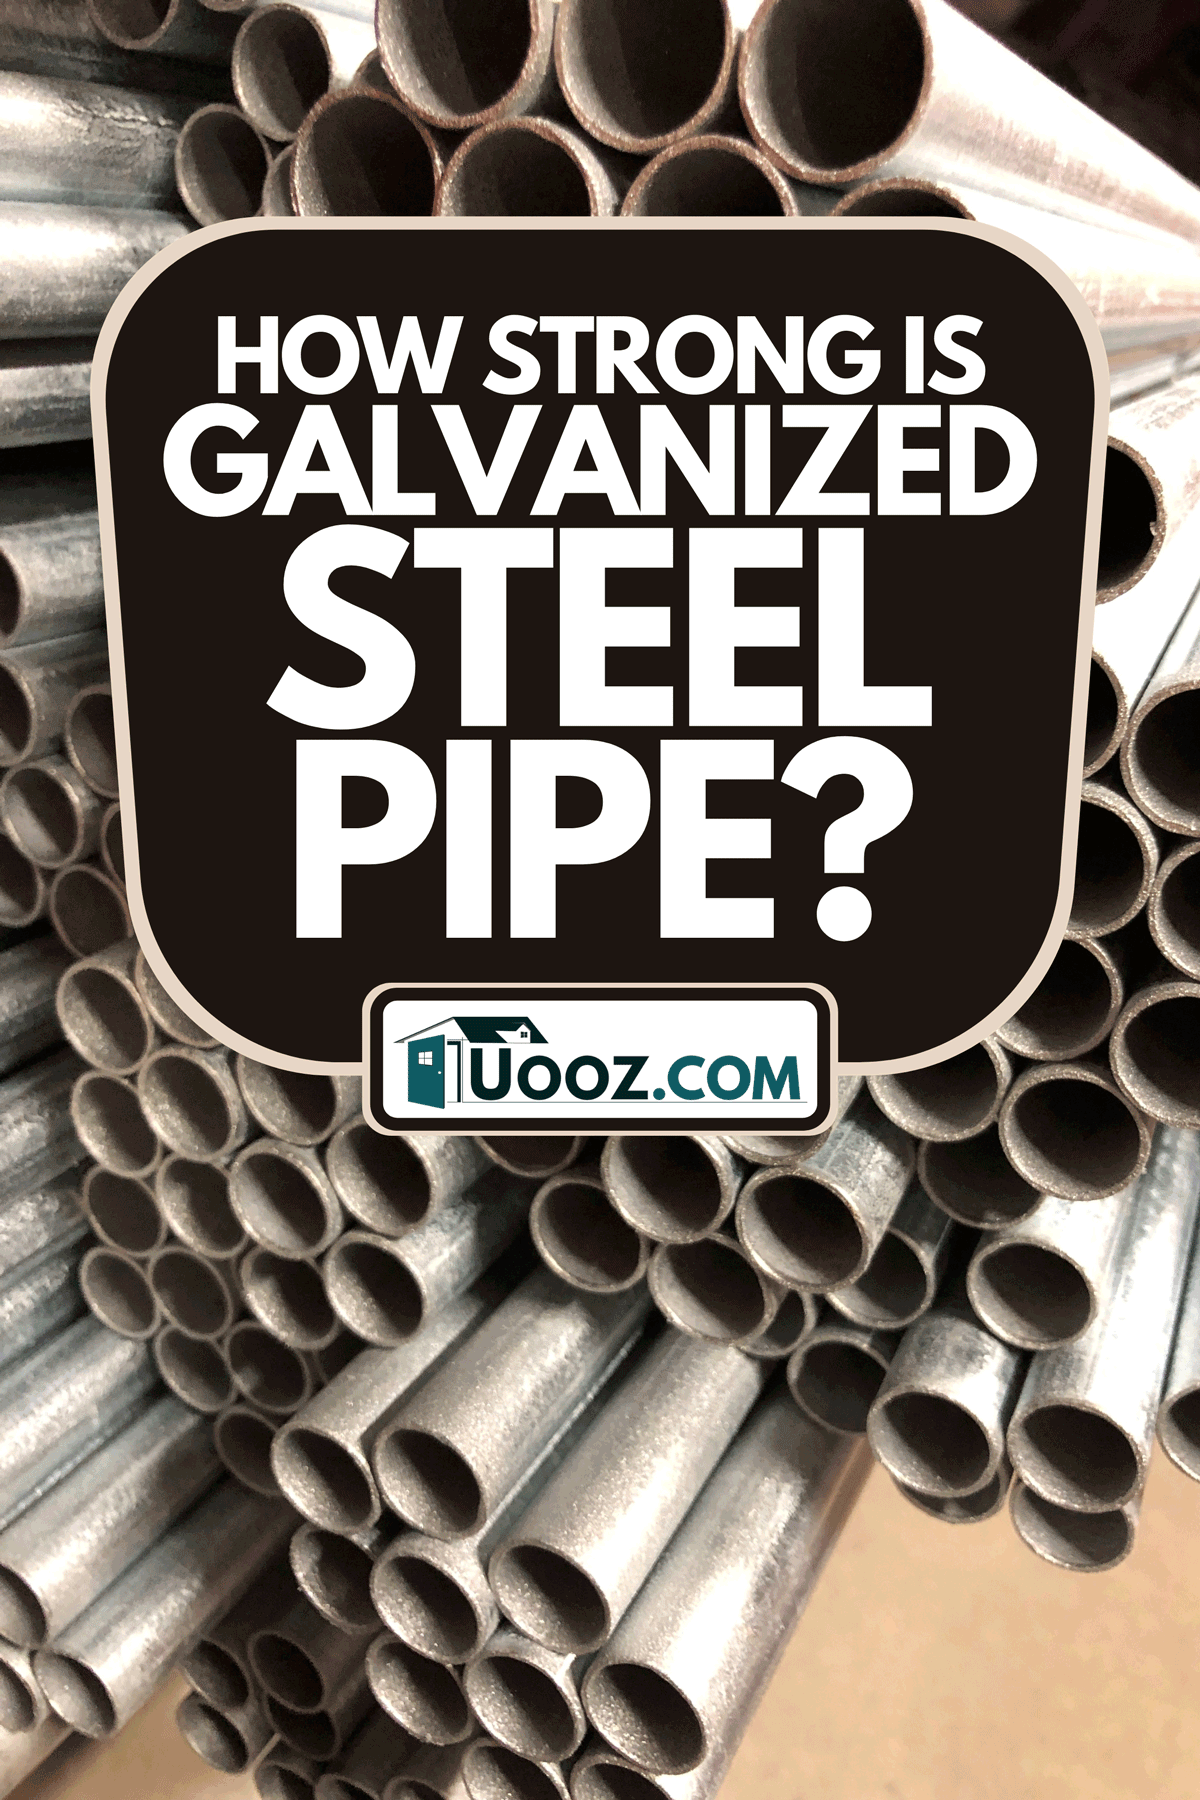 A pile of galvanize steel pipe, How Strong Is Galvanized Steel Pipe?